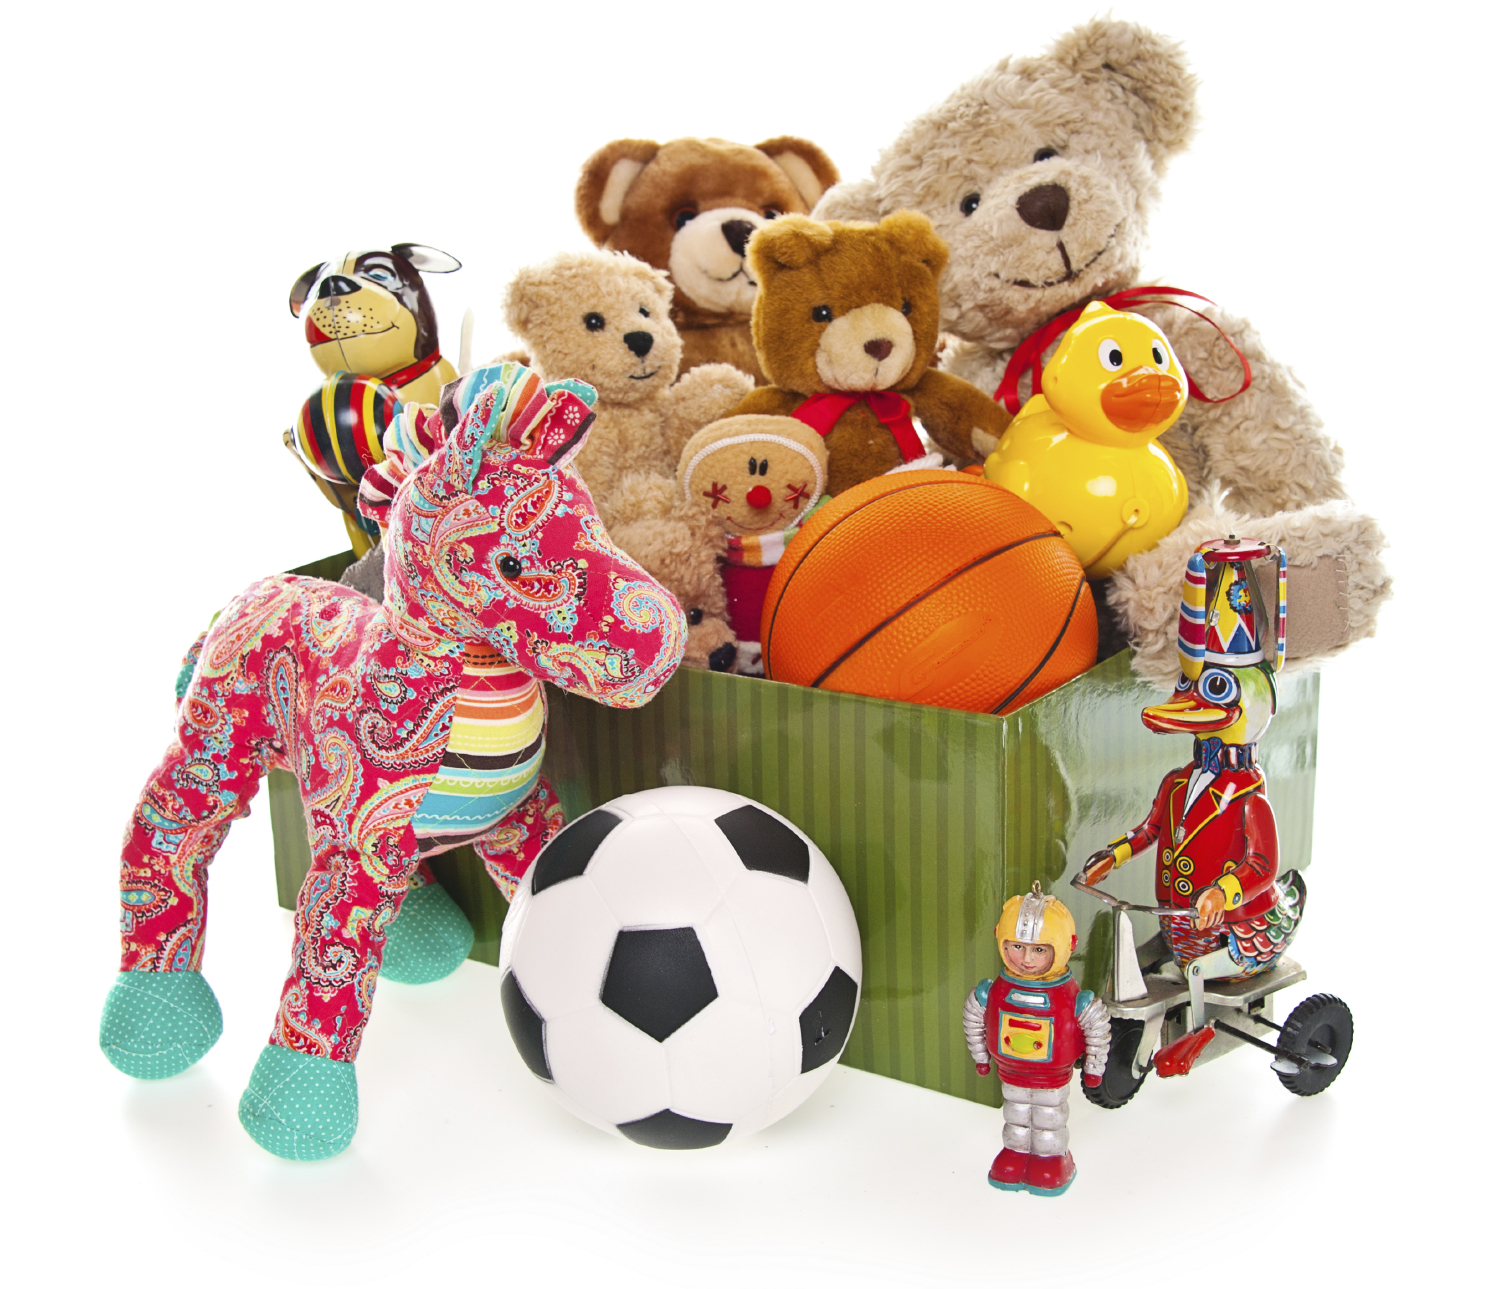 Kids Christmas Toy : Toy appeal from ward councillor cidc